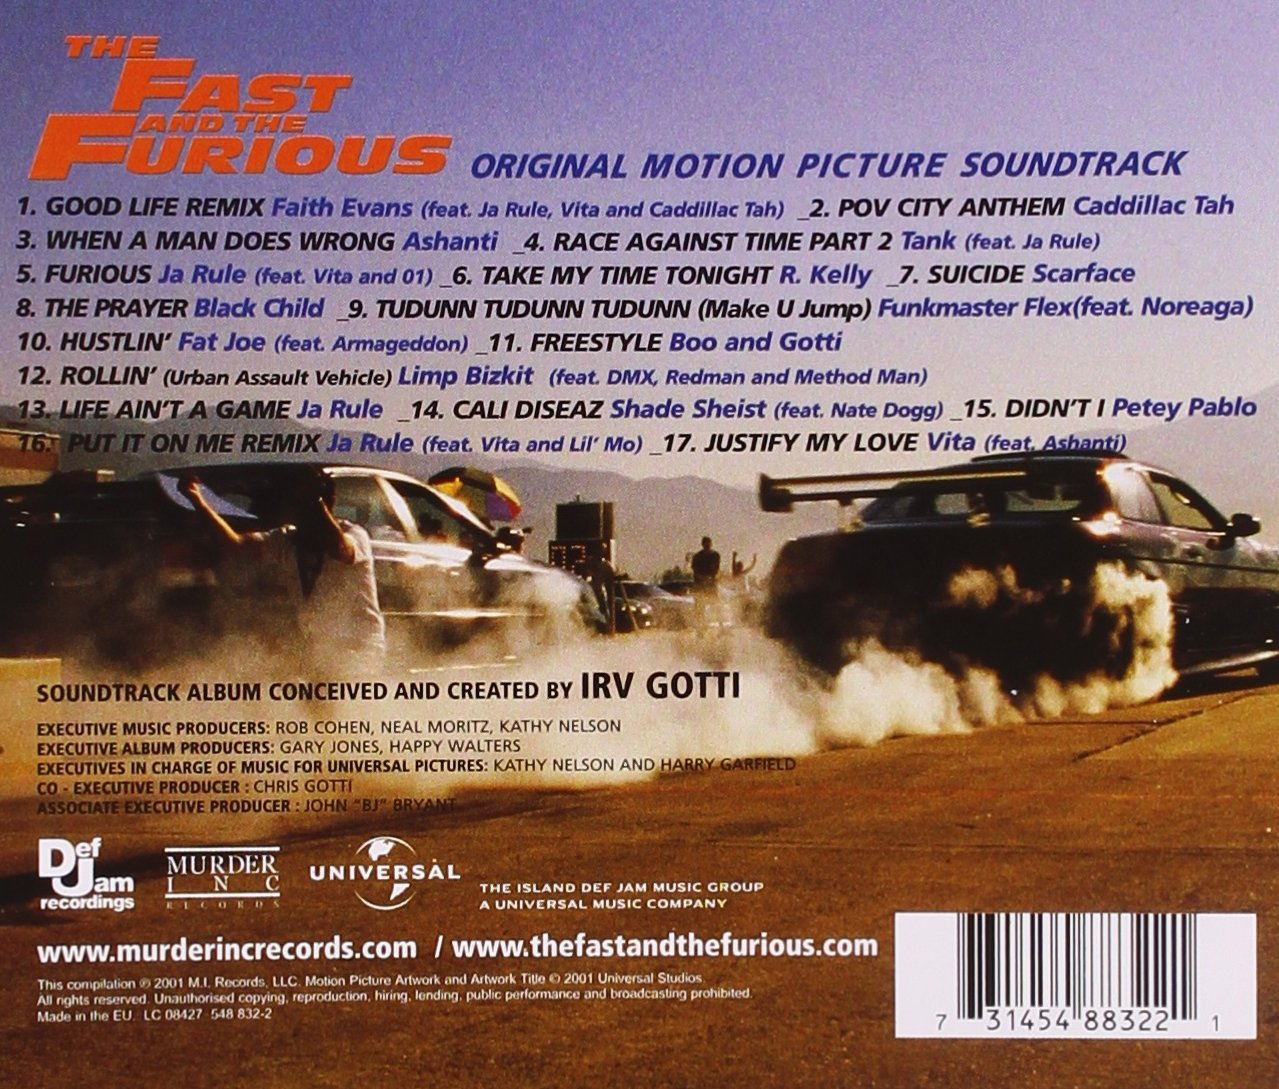 The Fast And The Furious Soundtrack Album Cover